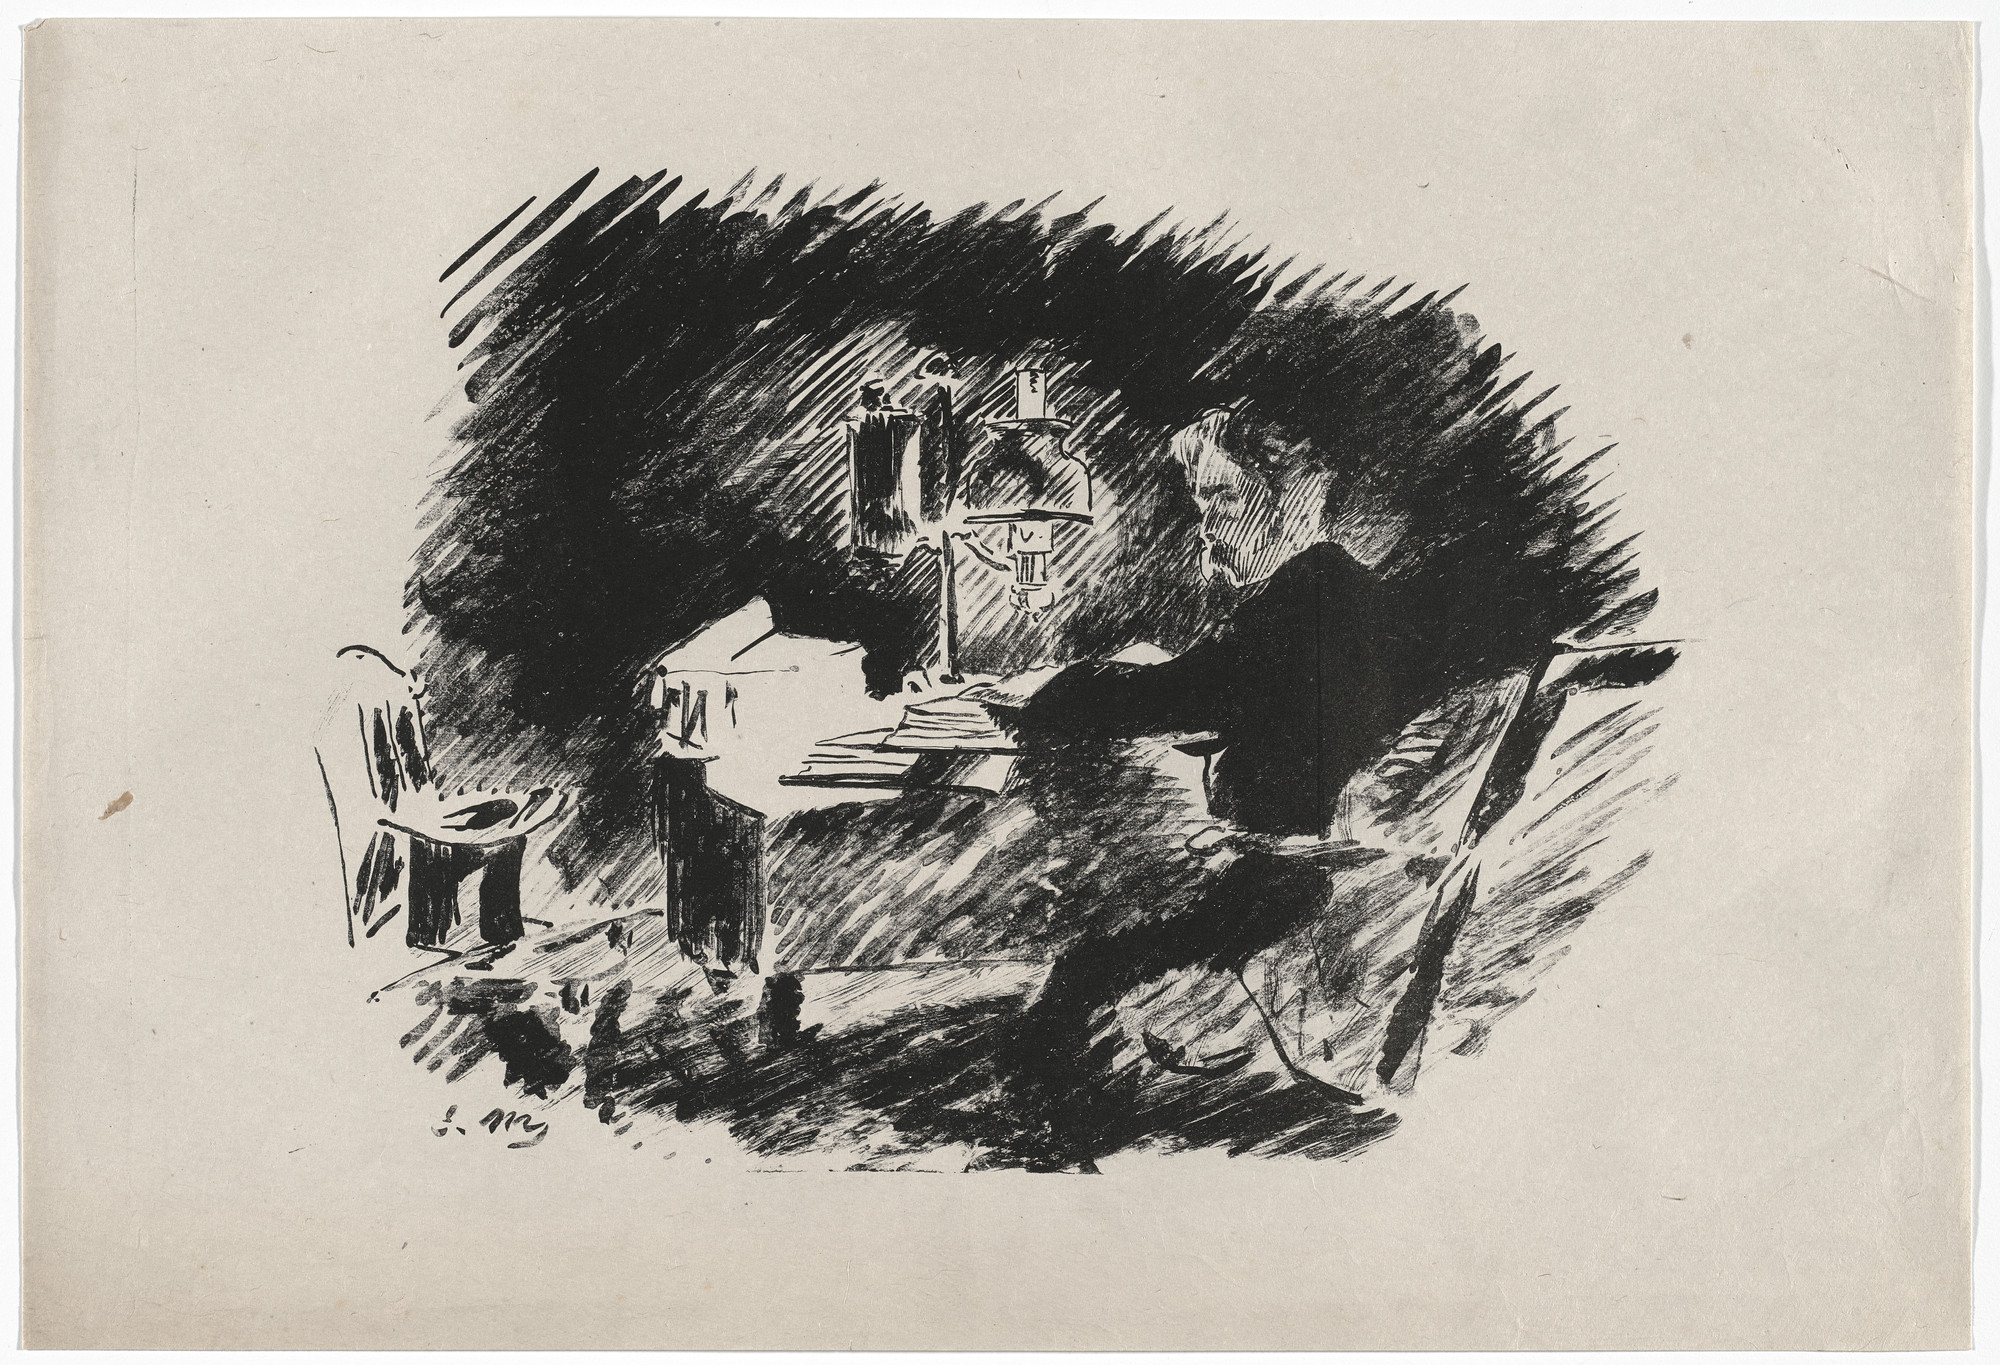 Édouard Manet. Sous la lampe (Under the Lamp) (plate 1) from Le Corbeau (The Raven). 1875